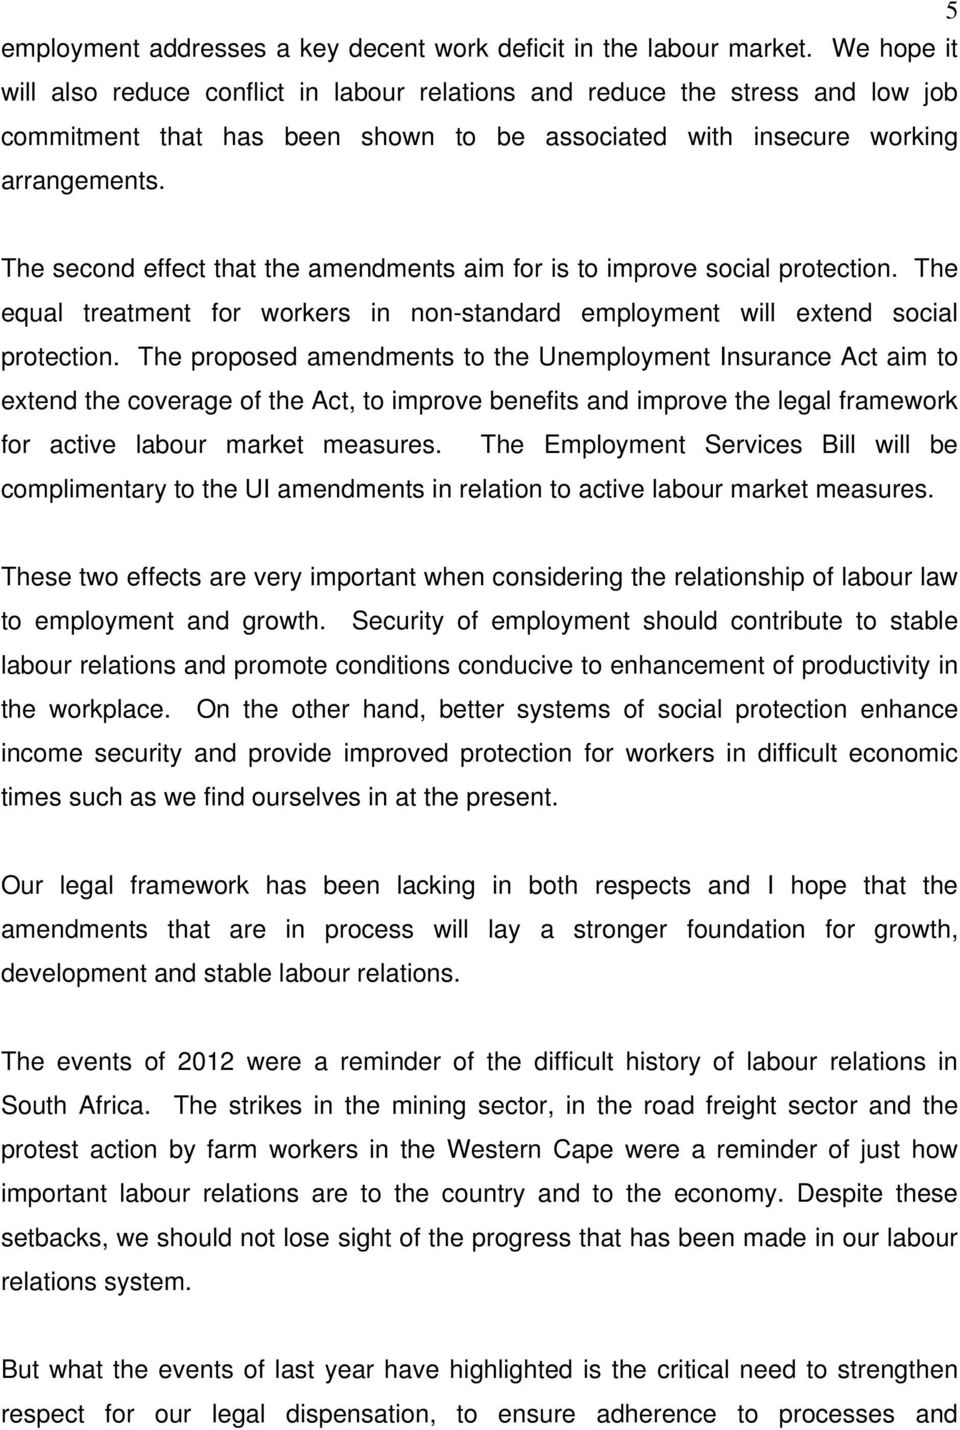 The second effect that the amendments aim for is to improve social protection. The equal treatment for workers in non-standard employment will extend social protection.